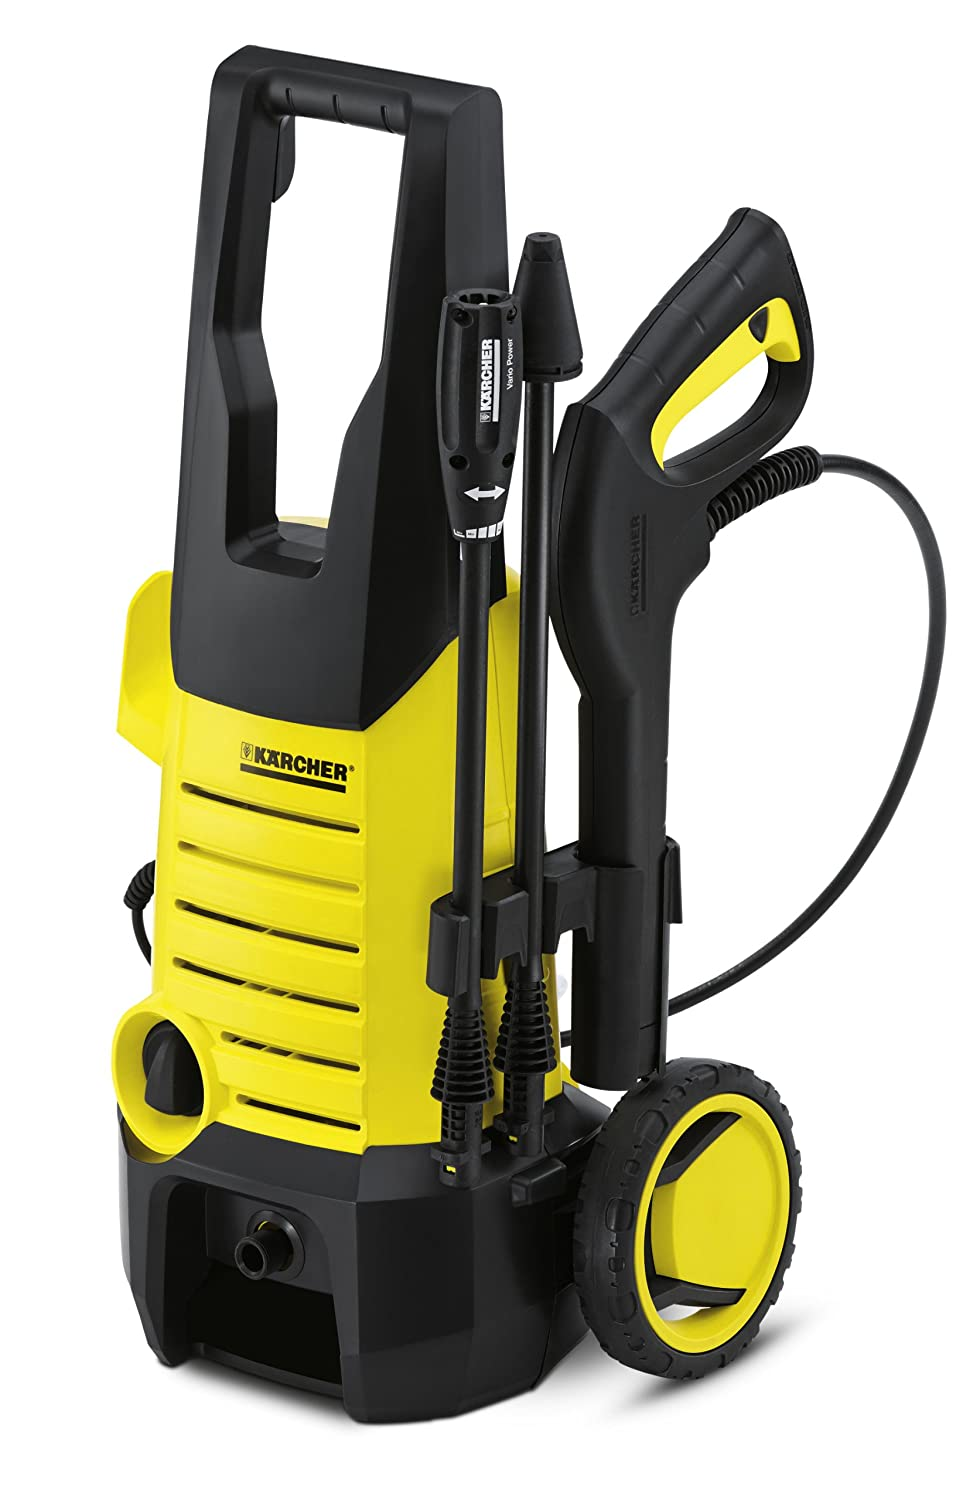 karcher k2 350 review pressurewashercritics com rh pressurewashercritics com User Guide Template User Manual